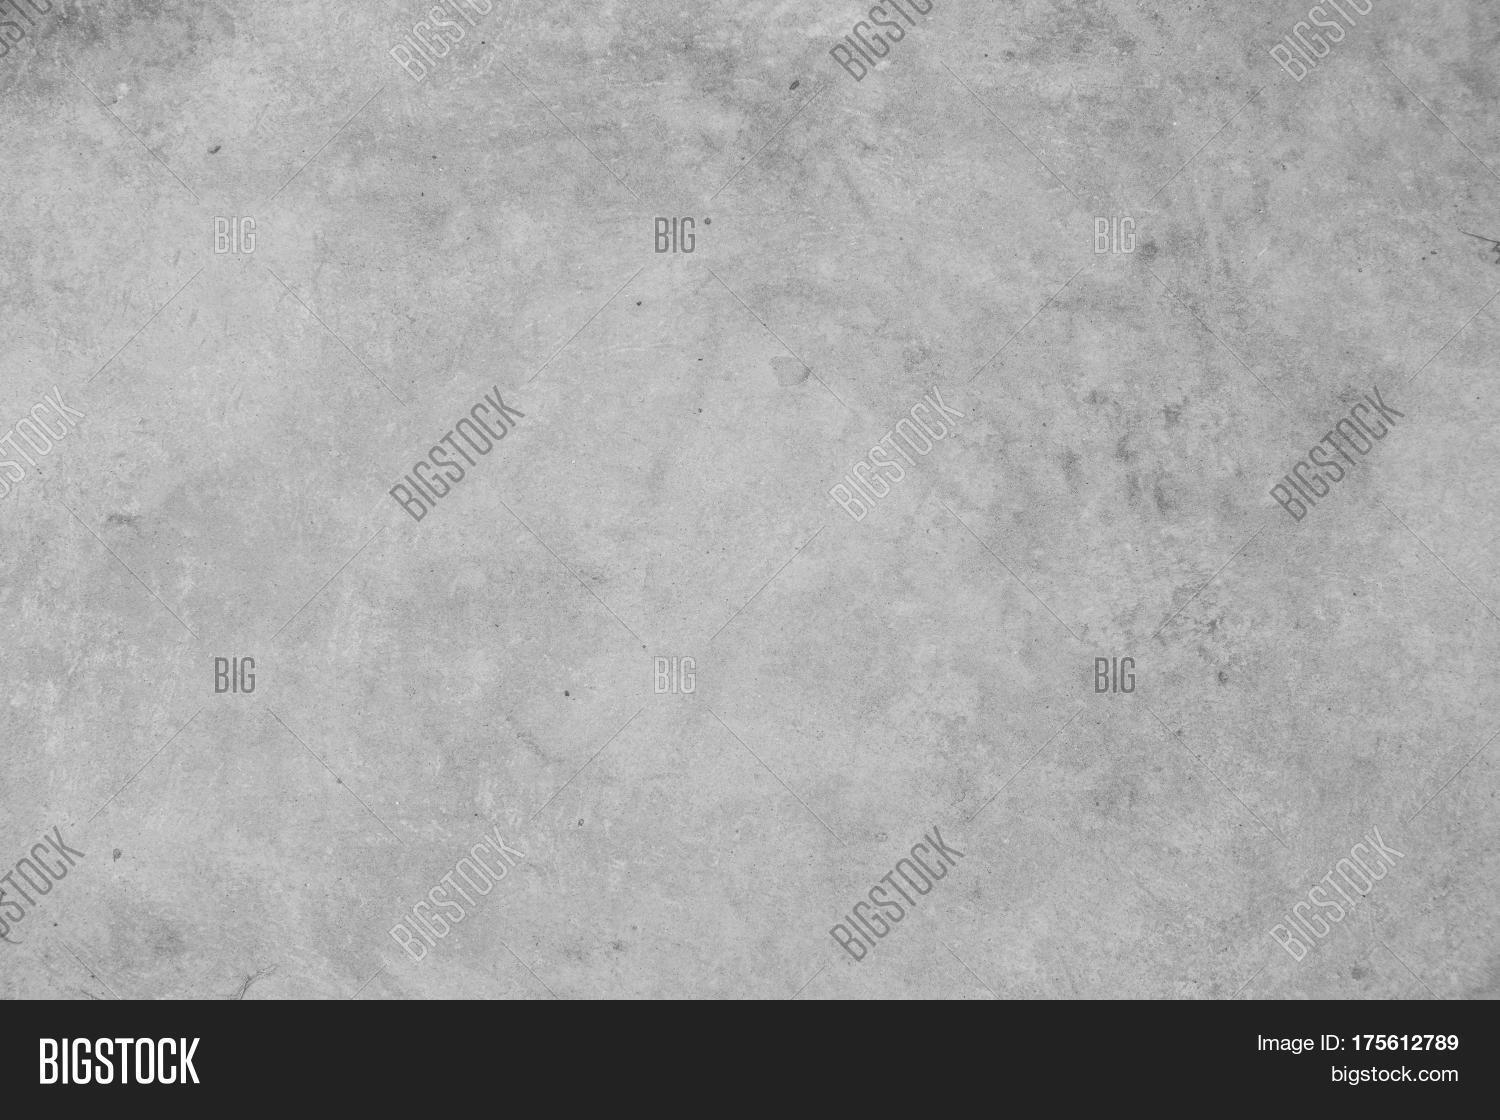 Rustic Concrete Texture Photo For Background Shabby Chic Backdrop Natural Stone Surface With Drips